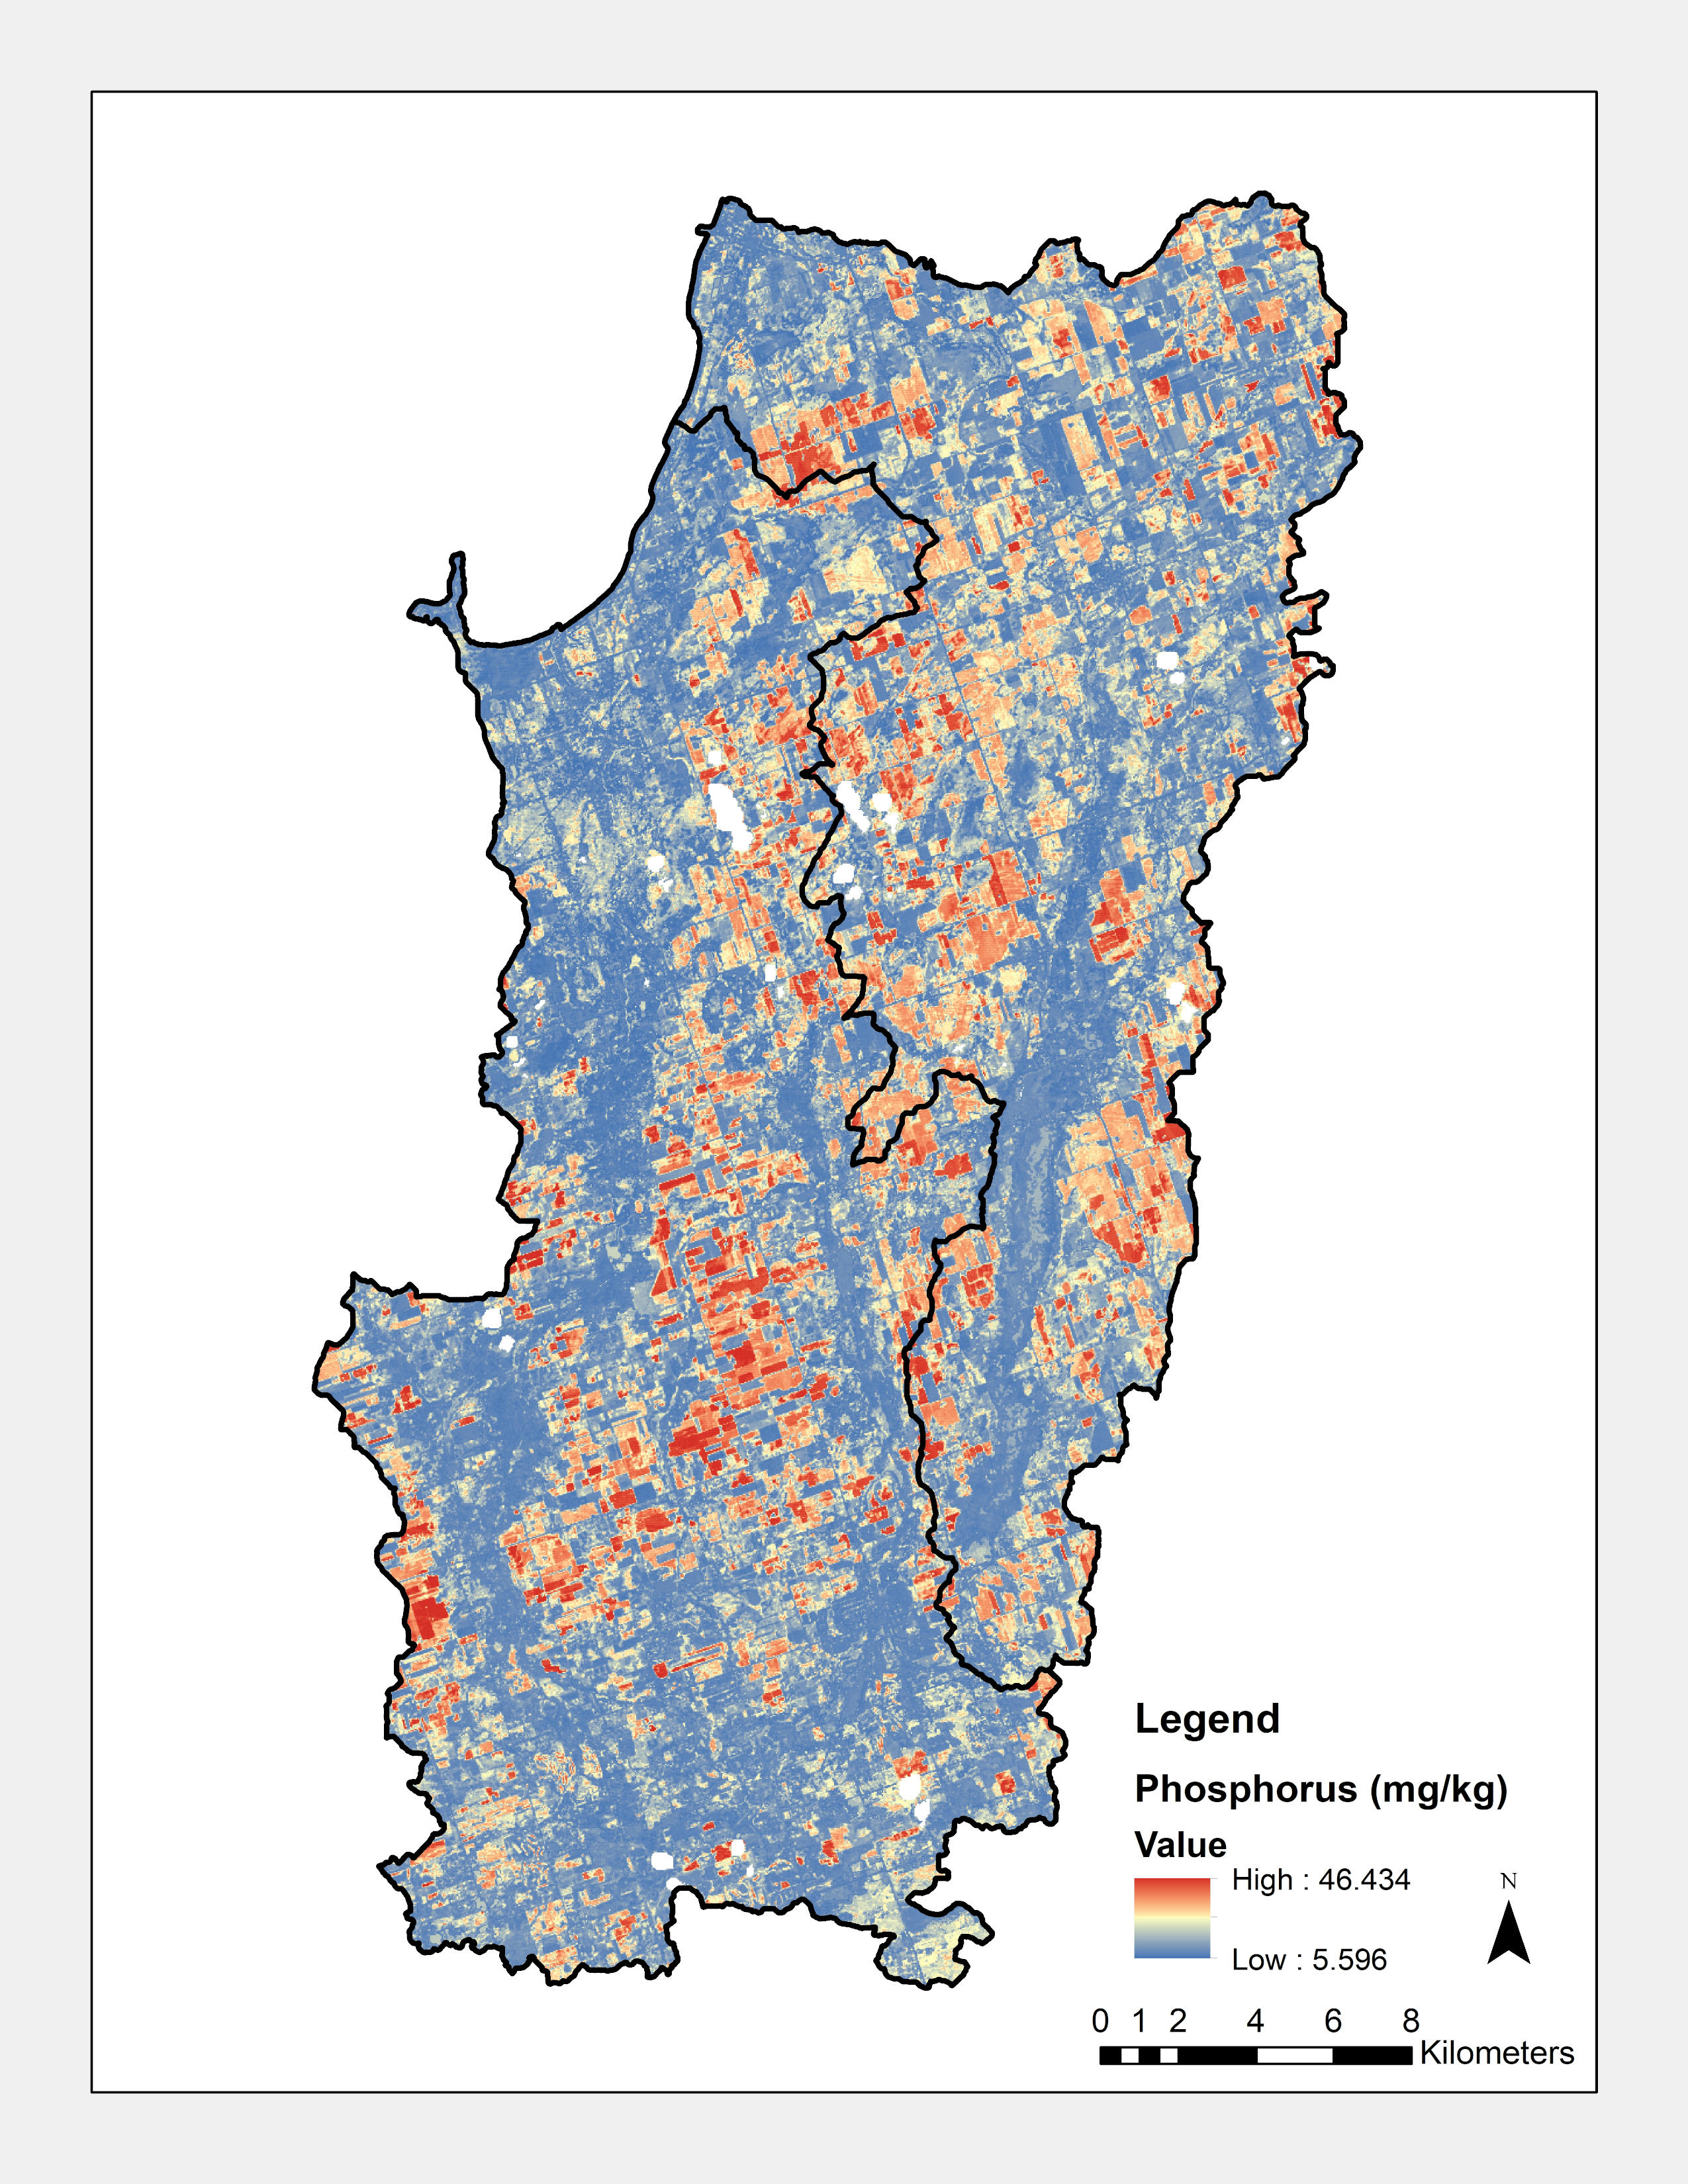 This image is of a map of the Pefferlaw/Uxbridge and Beaver subwatersheds showing the phosphorus estimates on the area on a scale where high estimates are red, medium estimates are yellow and low estimates are blue